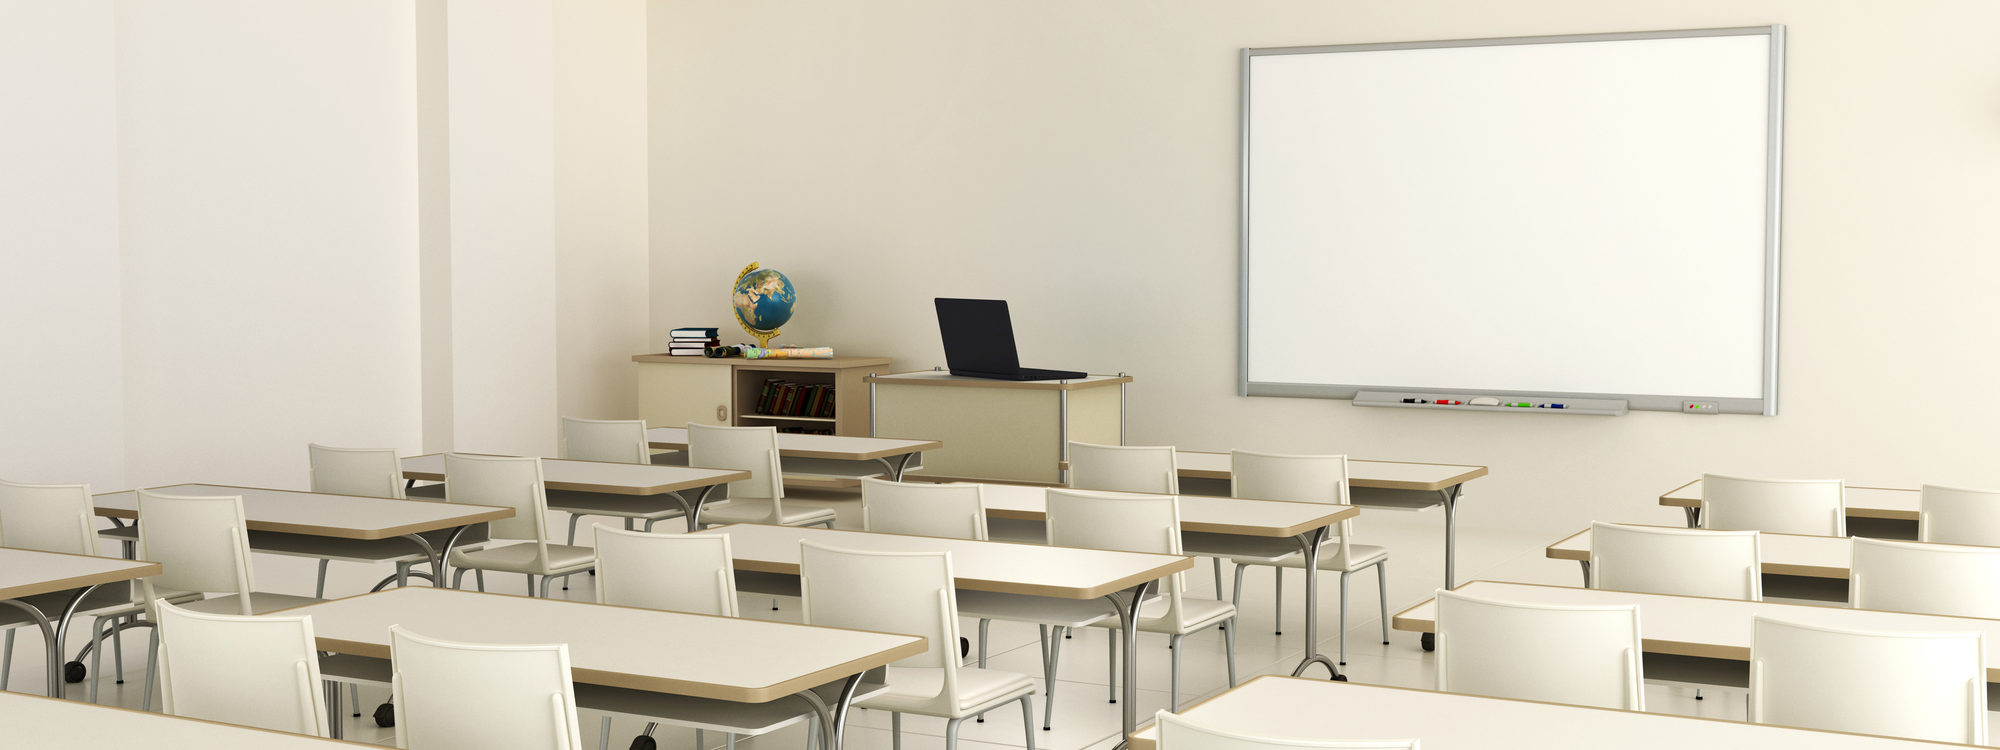 empty classroom with projector and smart board